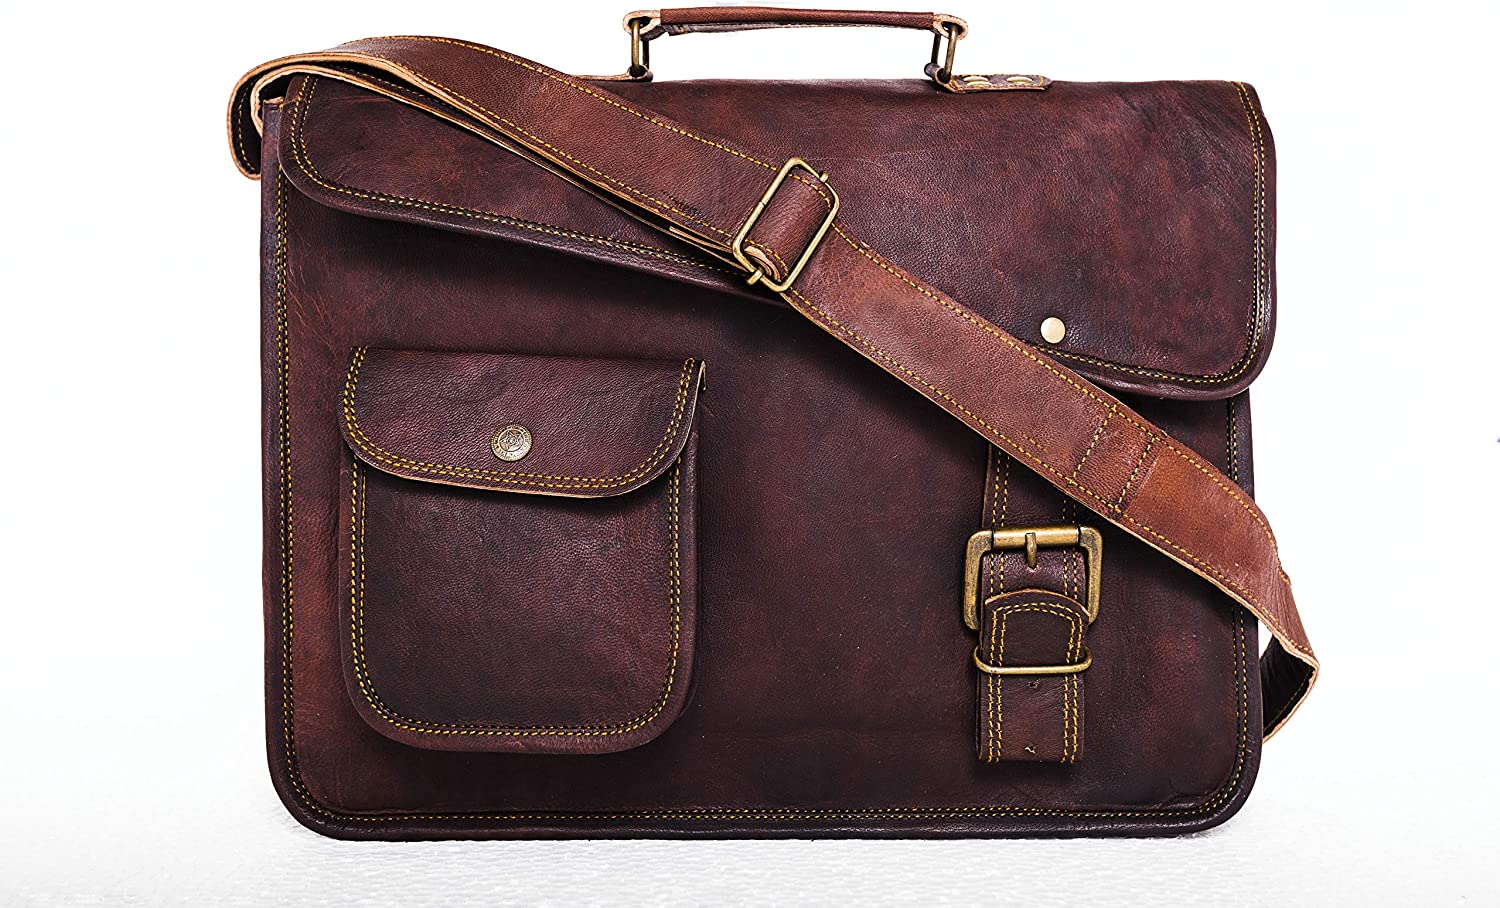 Genuine Leather Laptop Messenger Bag Office Briefcase College Bag for Men Women 15 inch Laptop Bag Computer Bag Cross Shoulder Satchel Bag School Travelling Distressed Bag